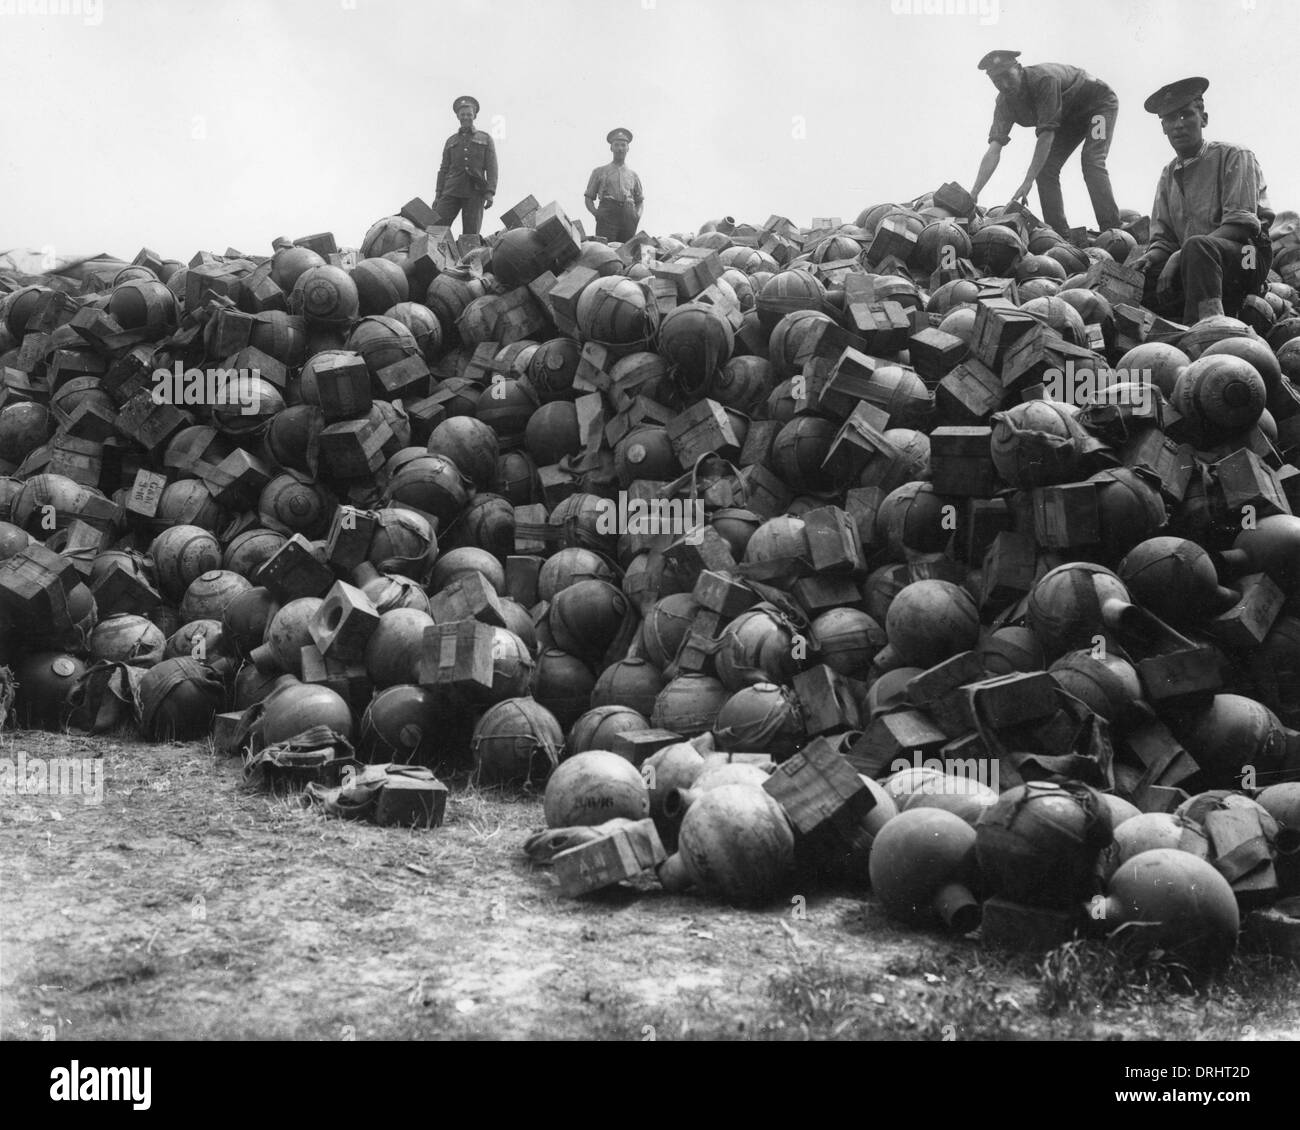 Apple Id Reset Email >> Supply dump of trench mortar ammunition, France, WW1 Stock Photo: 66160261 - Alamy